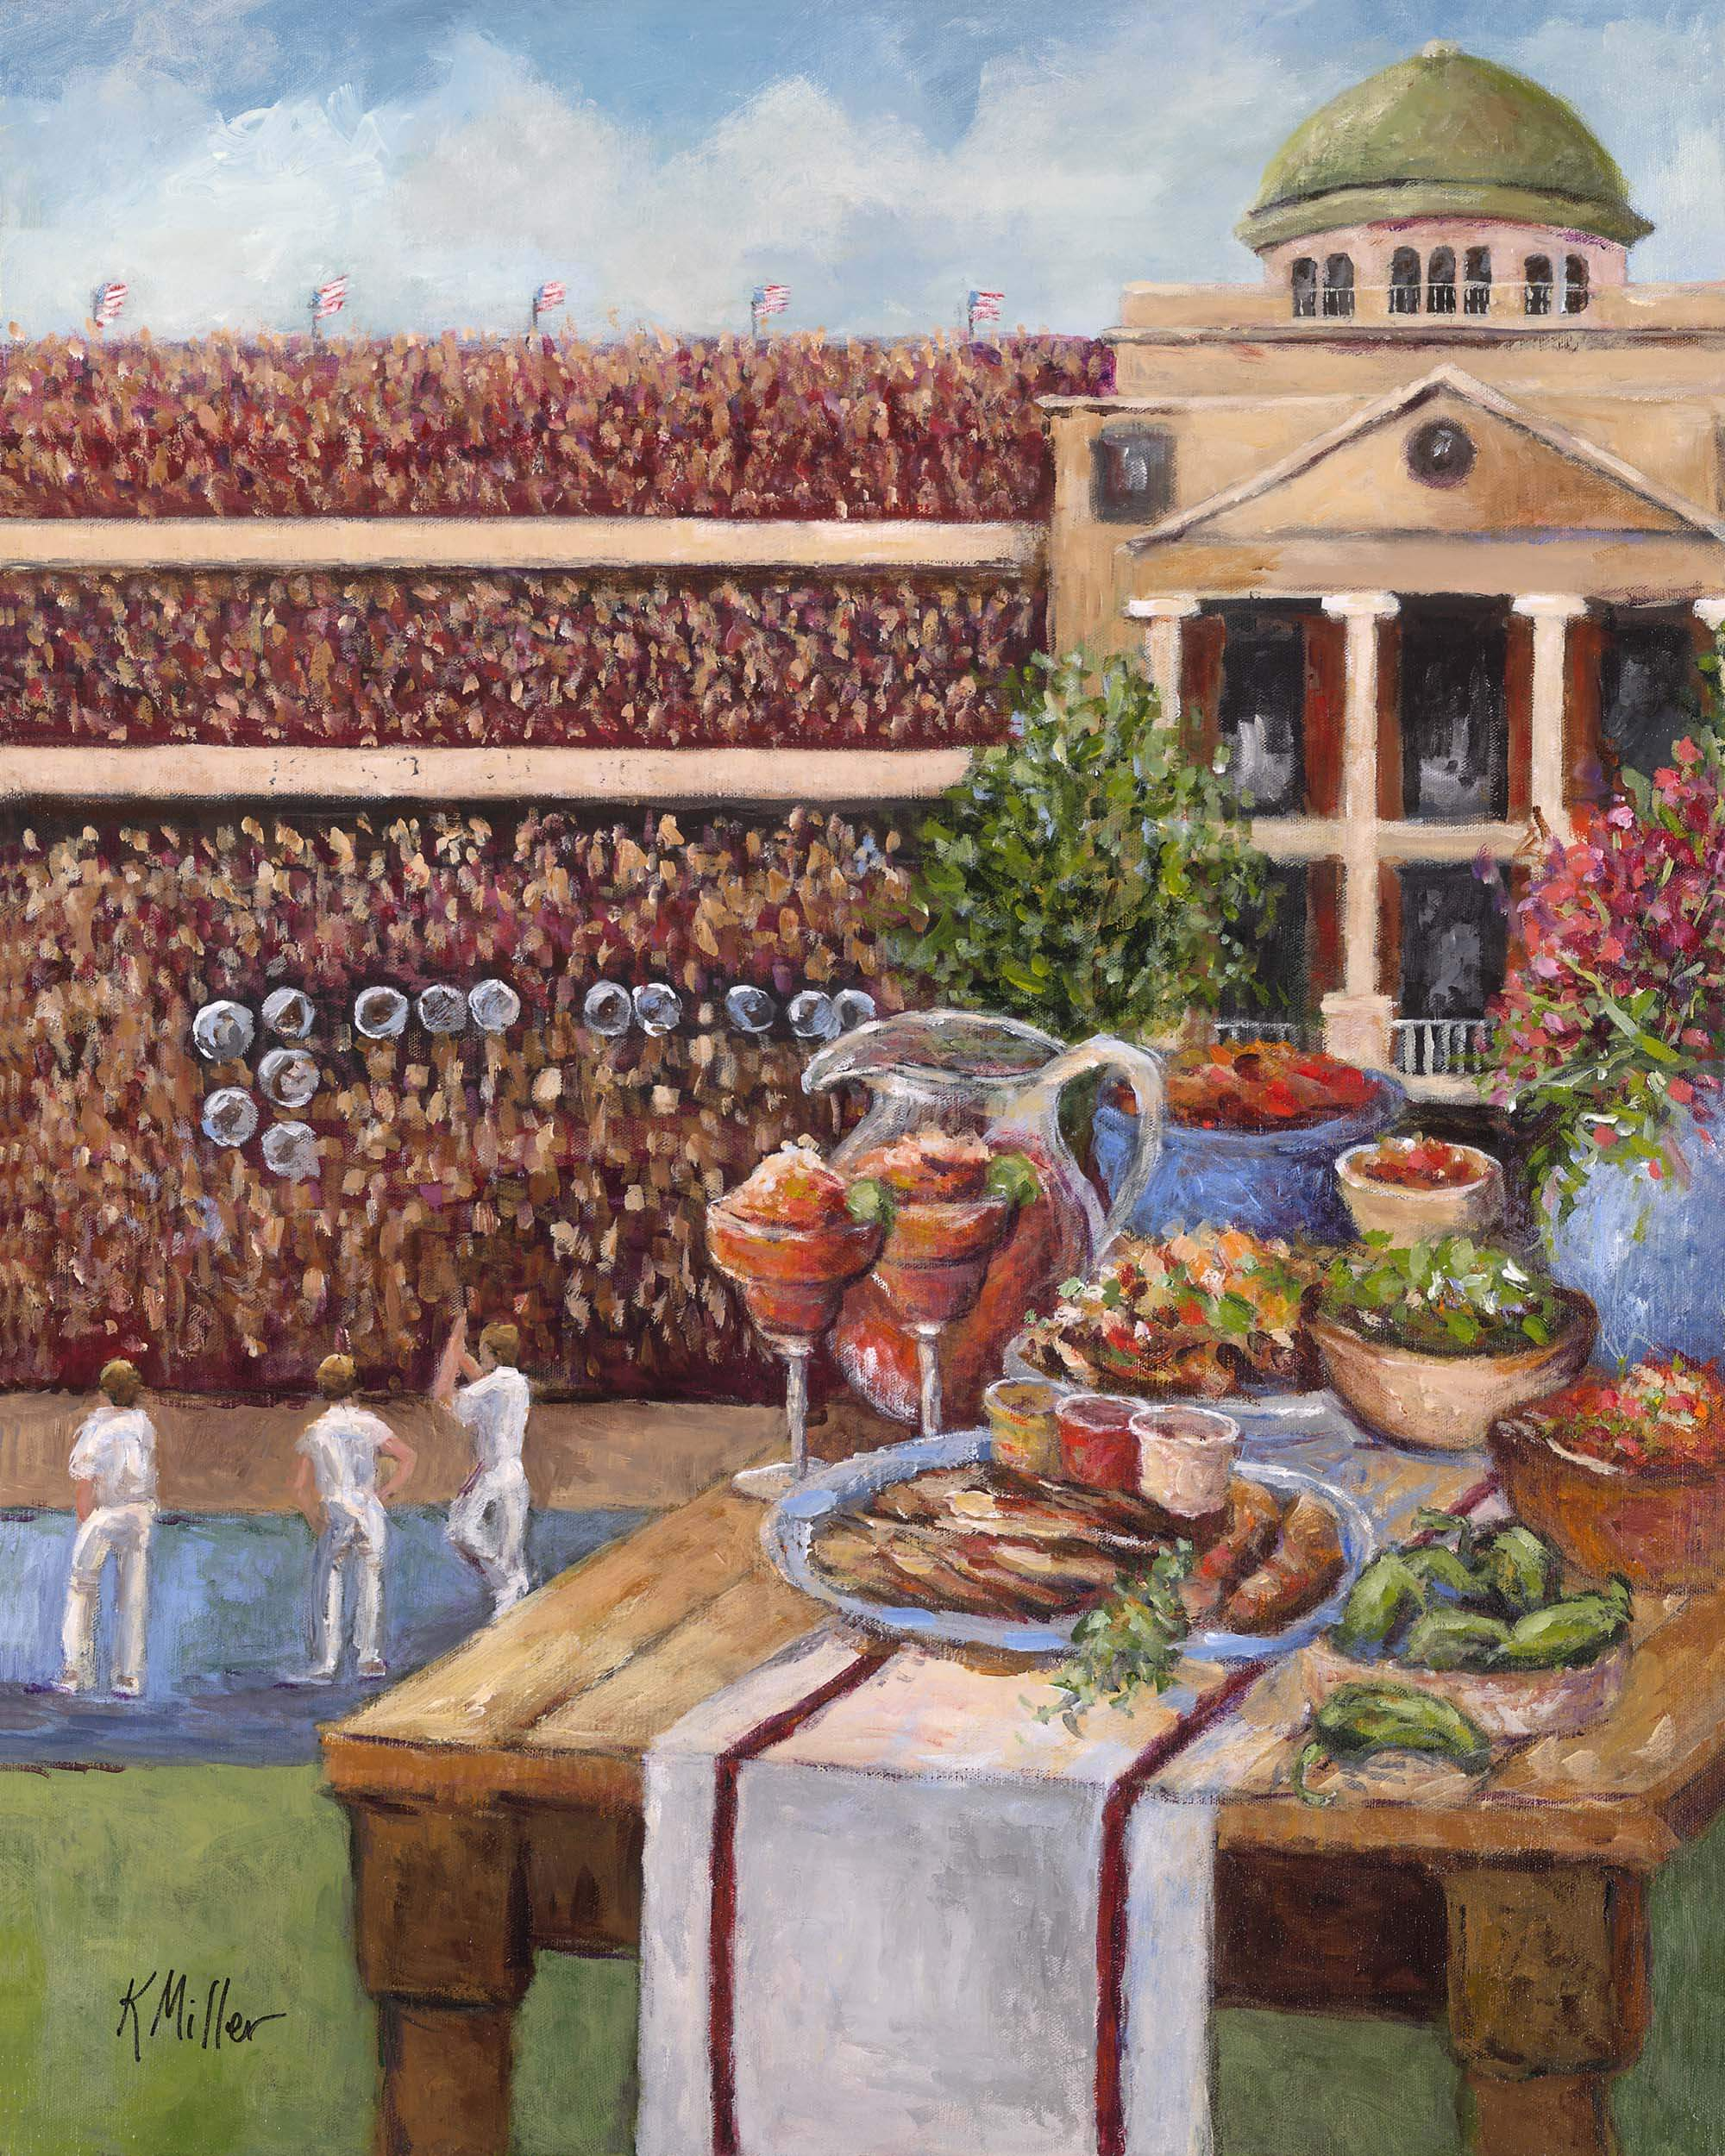 Tailgating In Aggieland painting by Kathy Miller